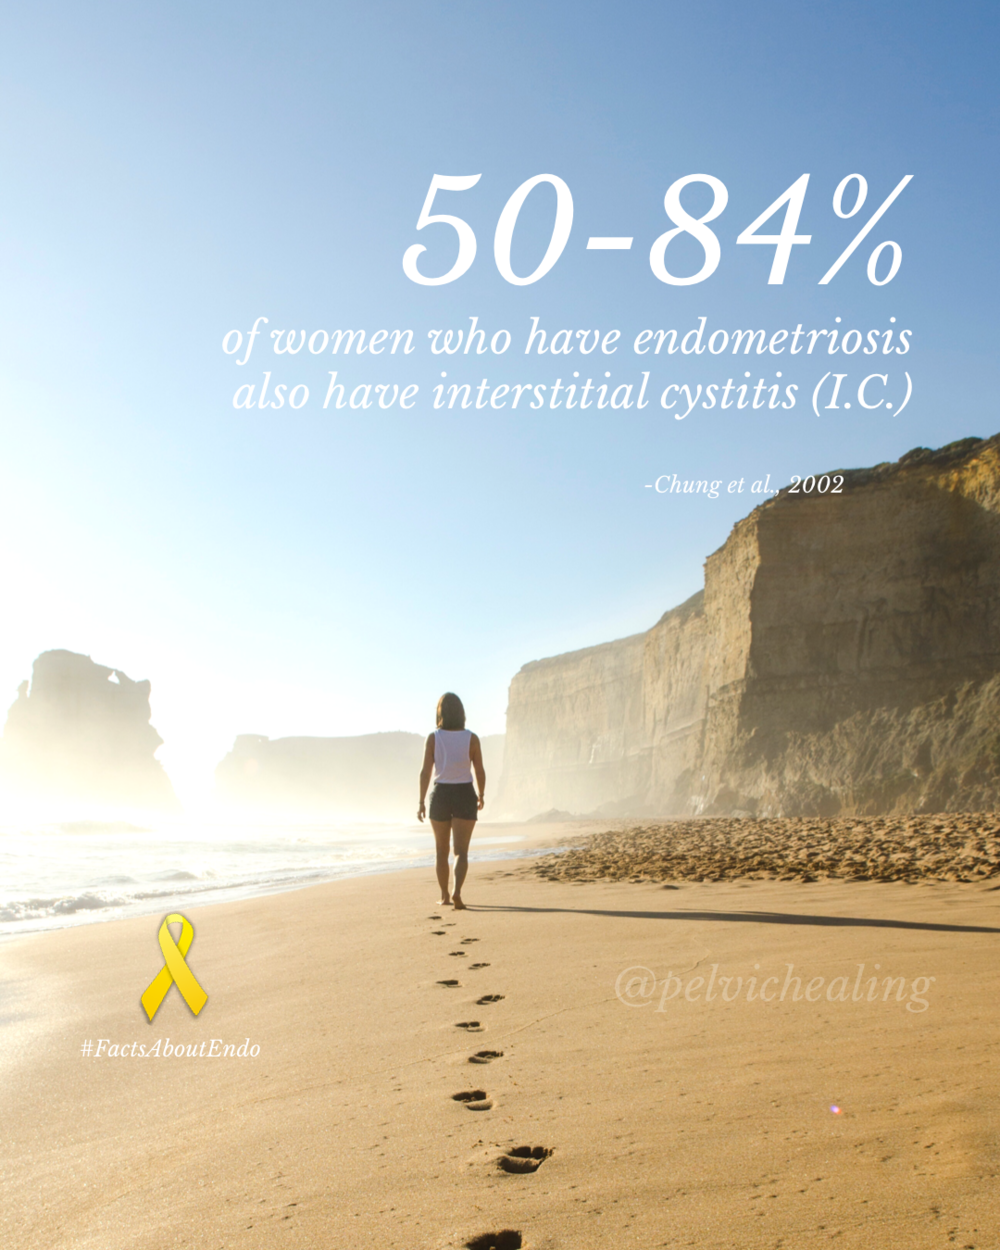 50-84% of women who have endometriosis also have interstitial cystitis (IC)